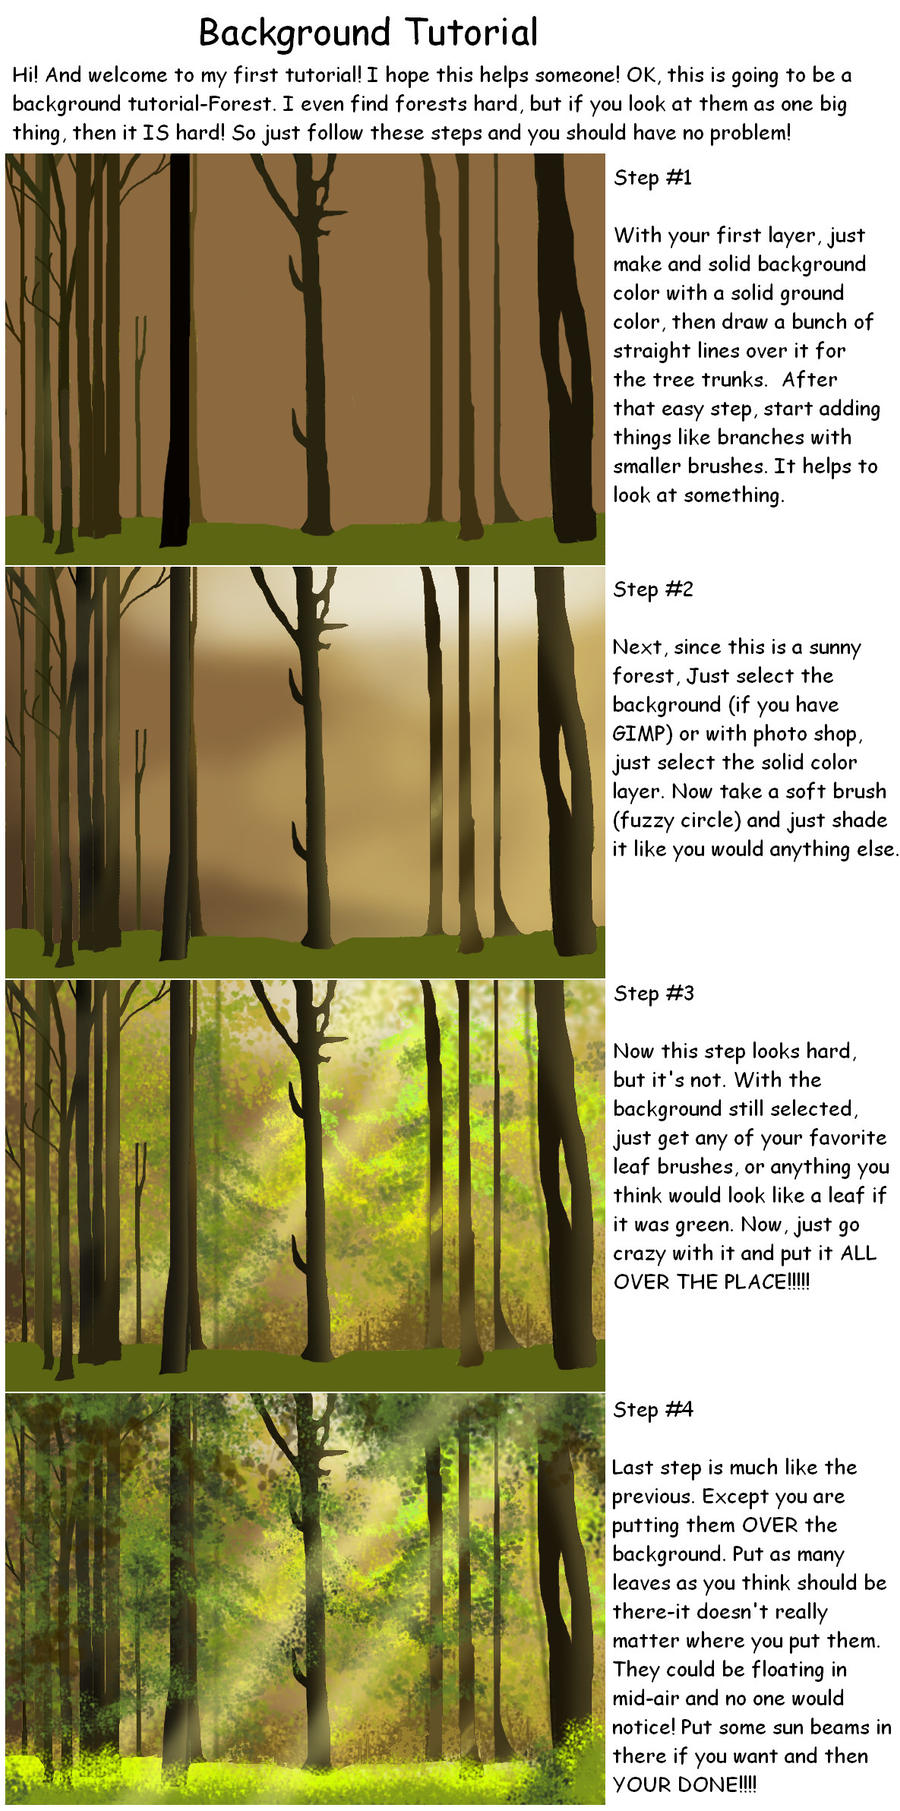 Background Tutorial by kokamo77